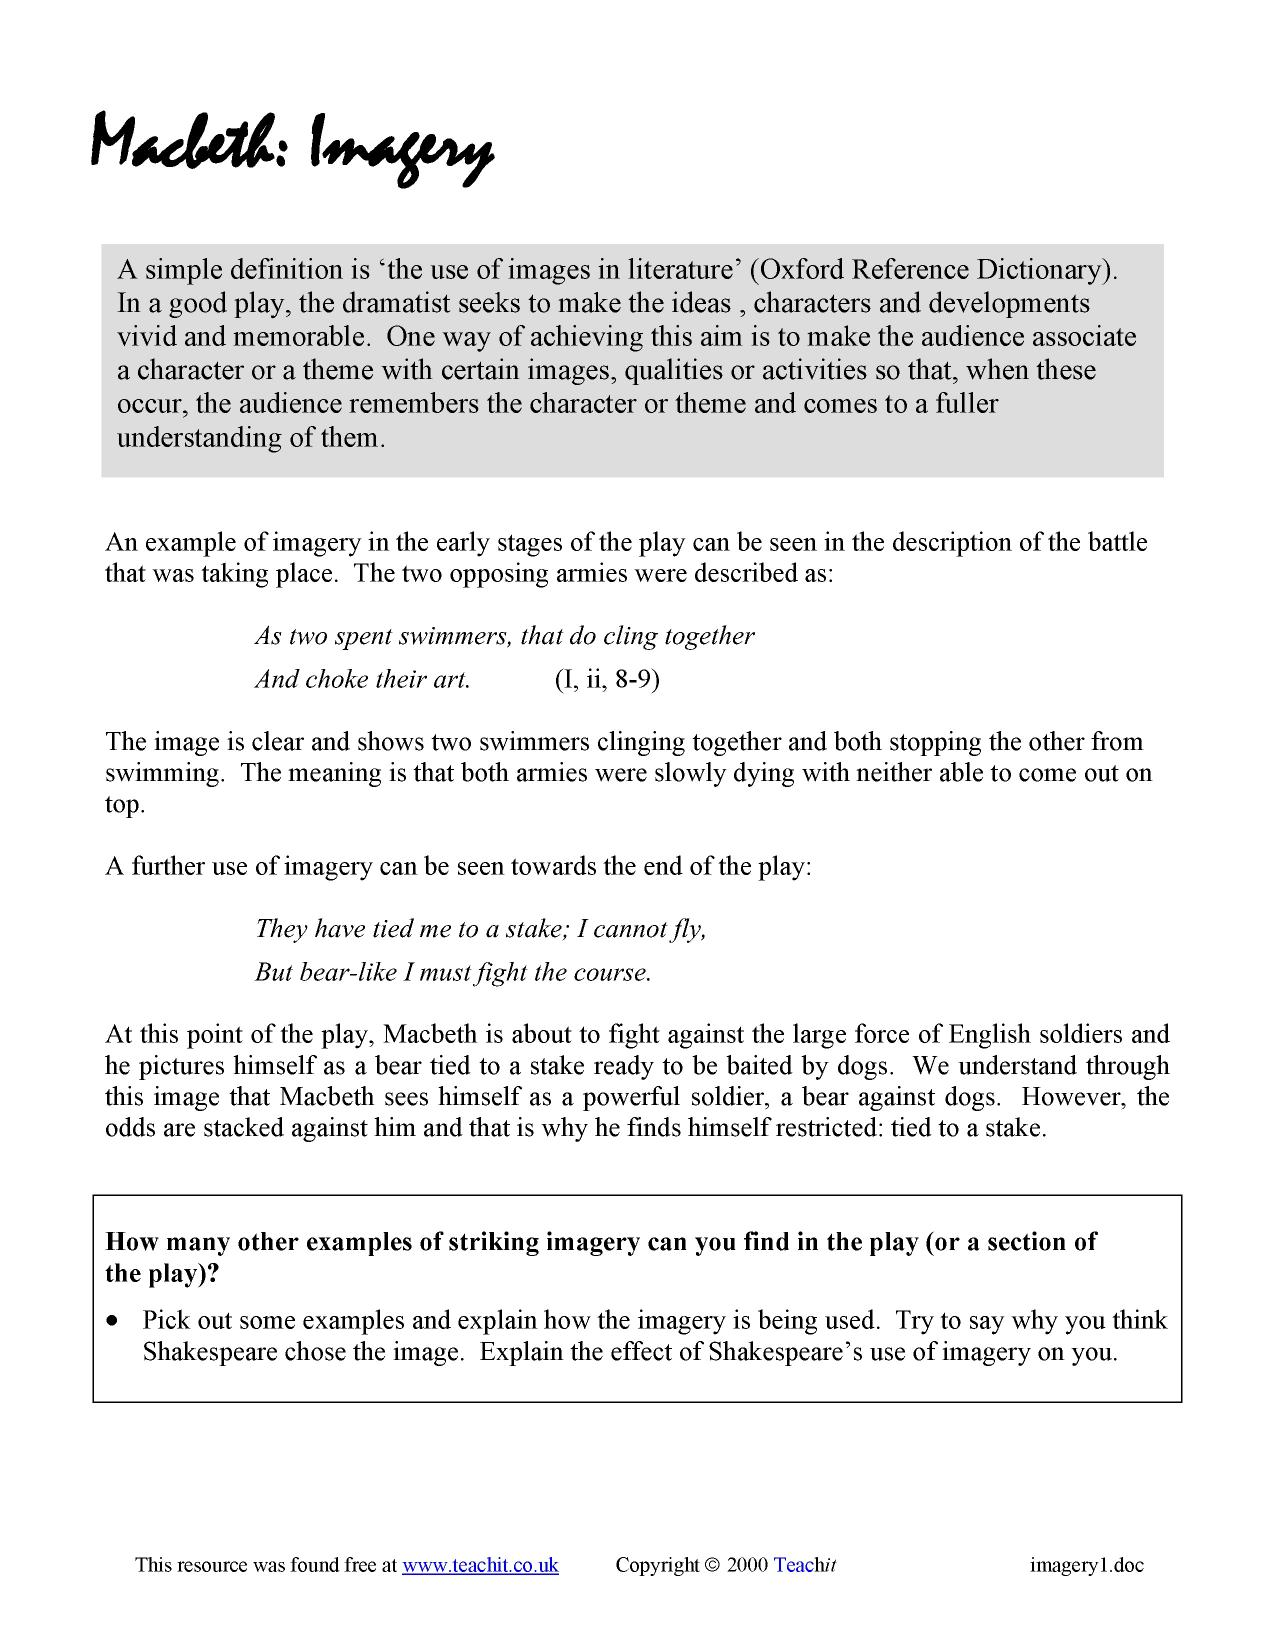 gcse english essays macbeth Gcse english coursework macbeth, good transition words for history essays on ireland the road not taken by robert frost essay.